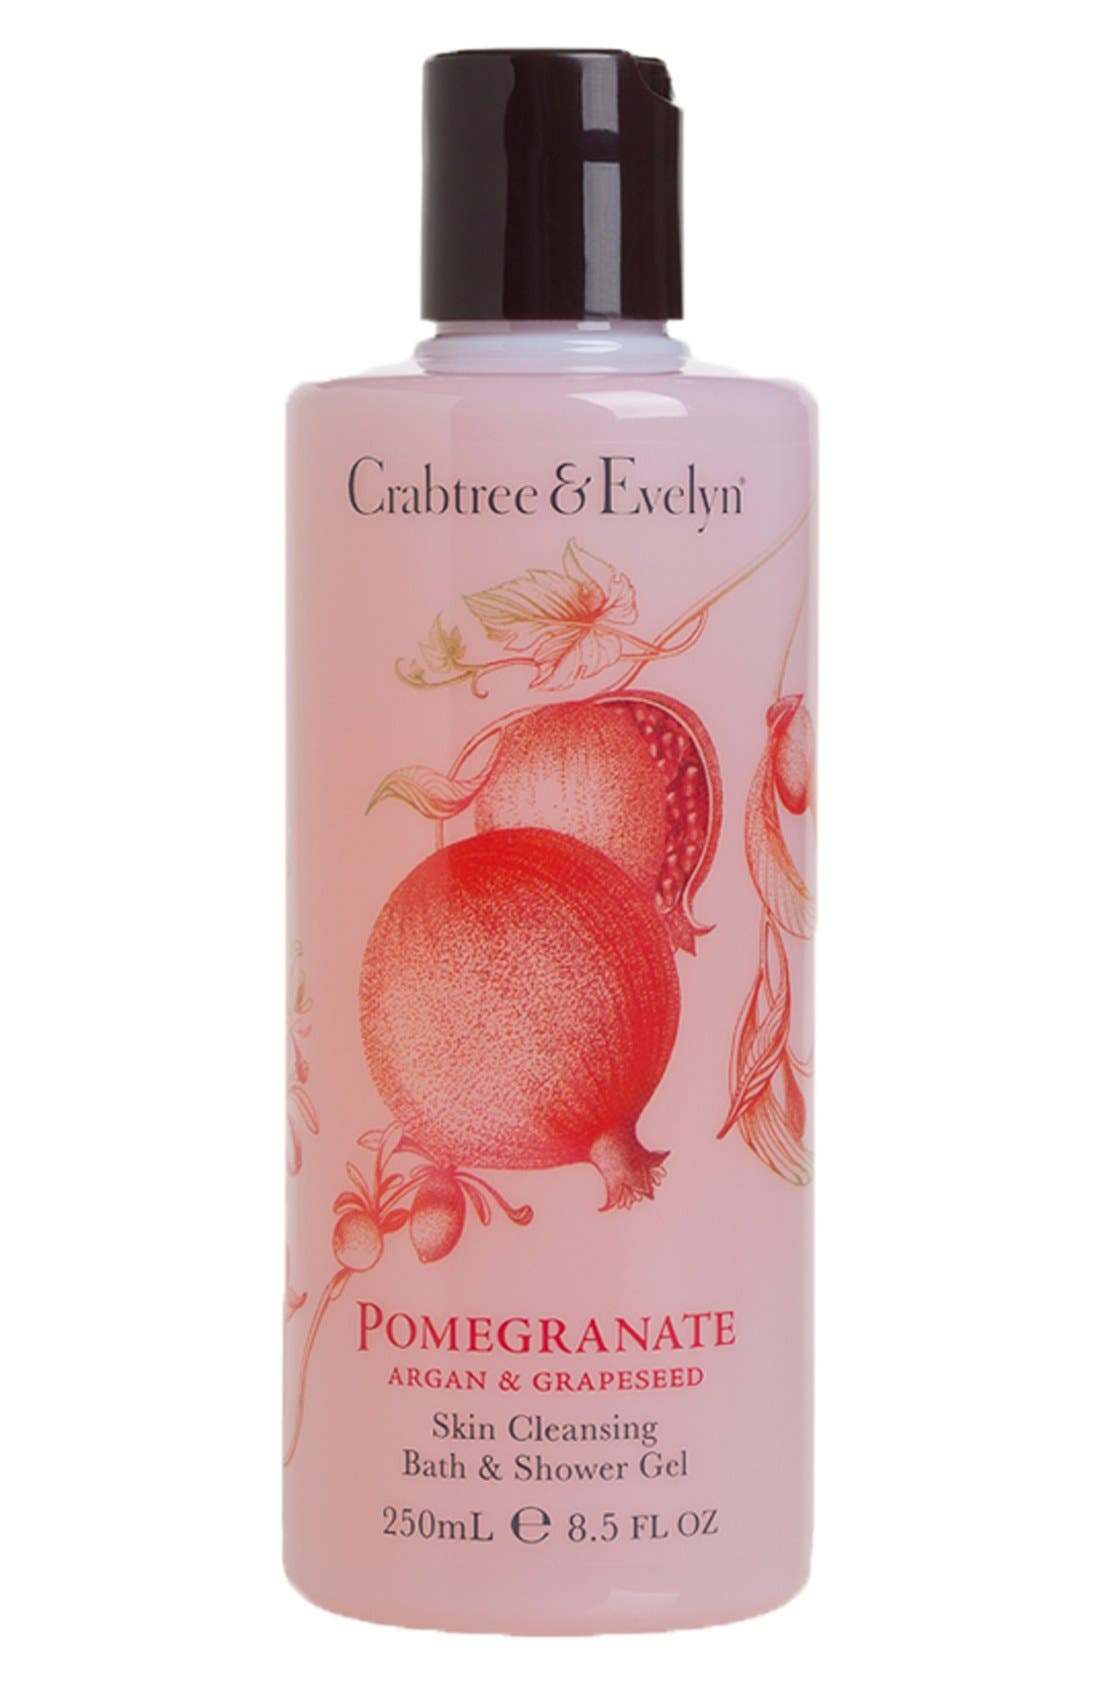 Crabtree & Evelyn 'Pomegranate, Argan & Grapeseed' Skin Cleansing Bath & Shower Gel